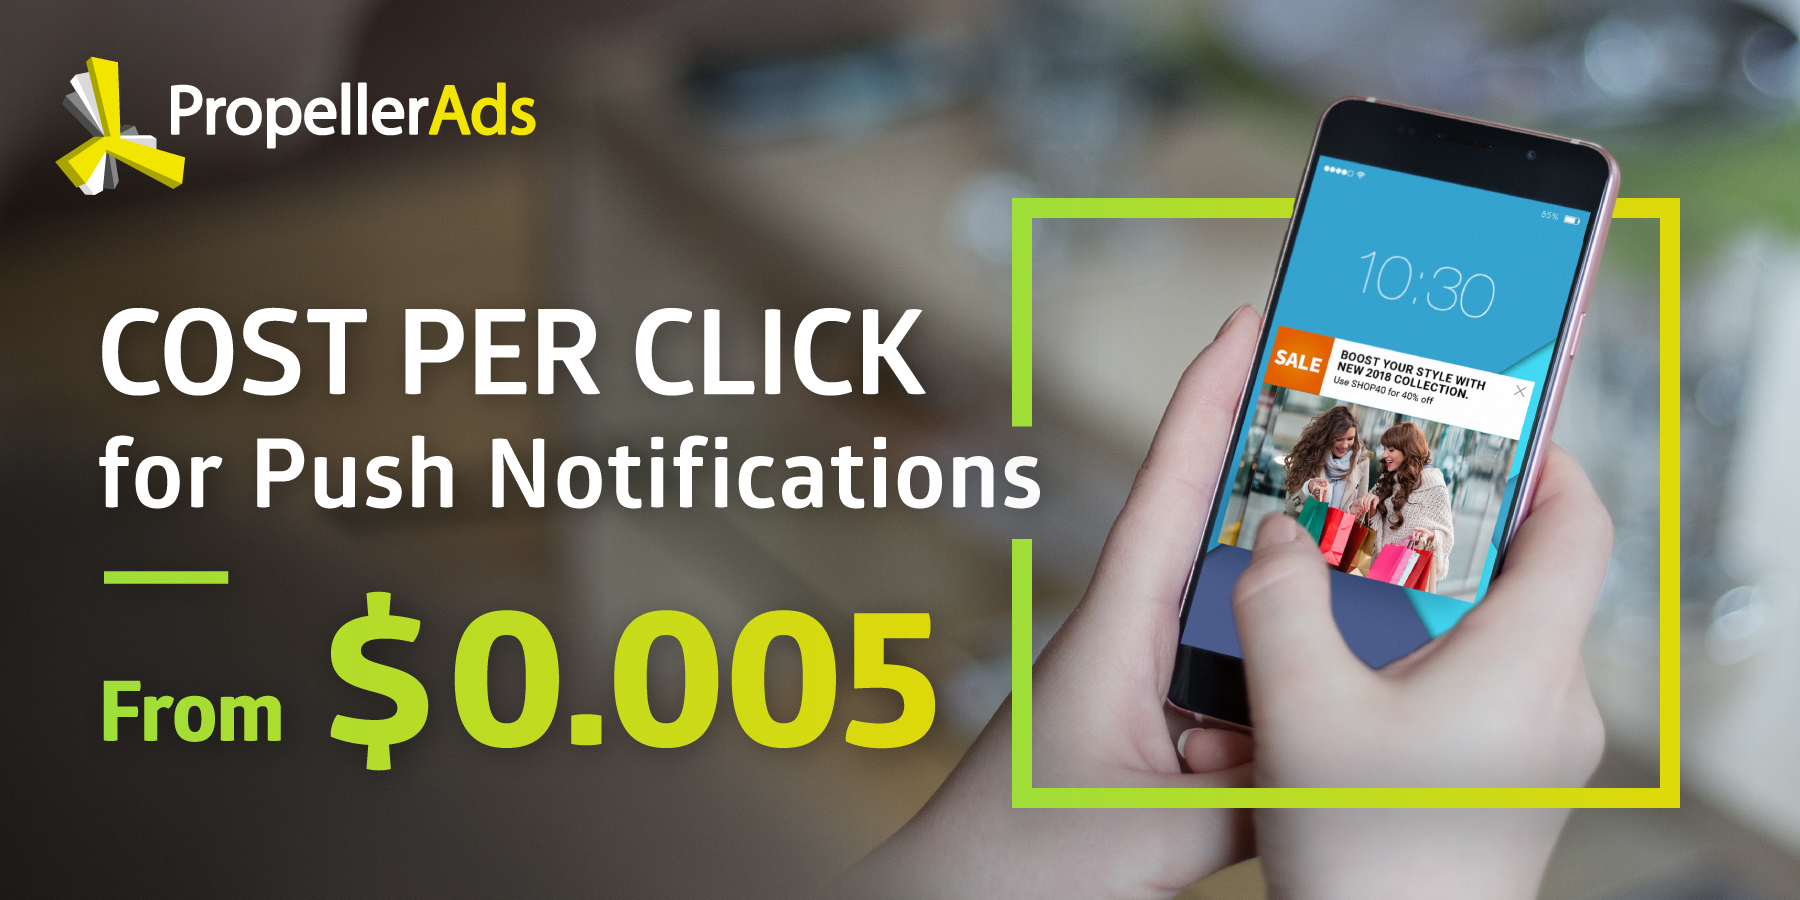 ew Bidding Model! Cost per Click is Now Available for Native Push Notifications